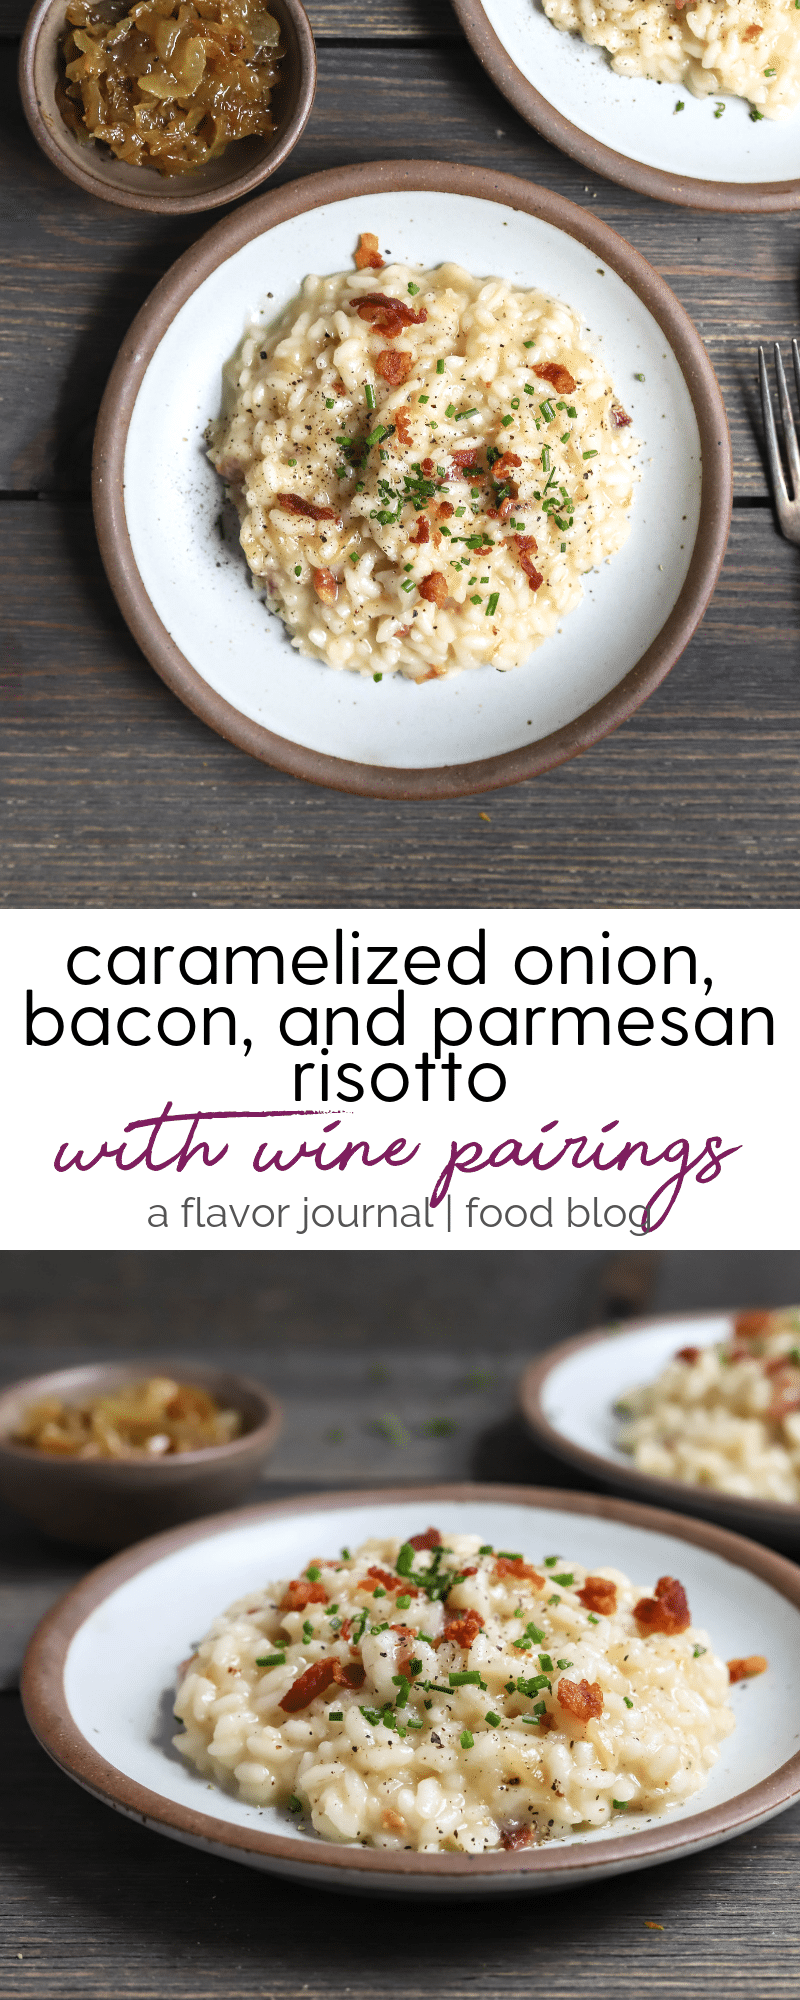 caramelized onion, bacon, and parmesan risotto